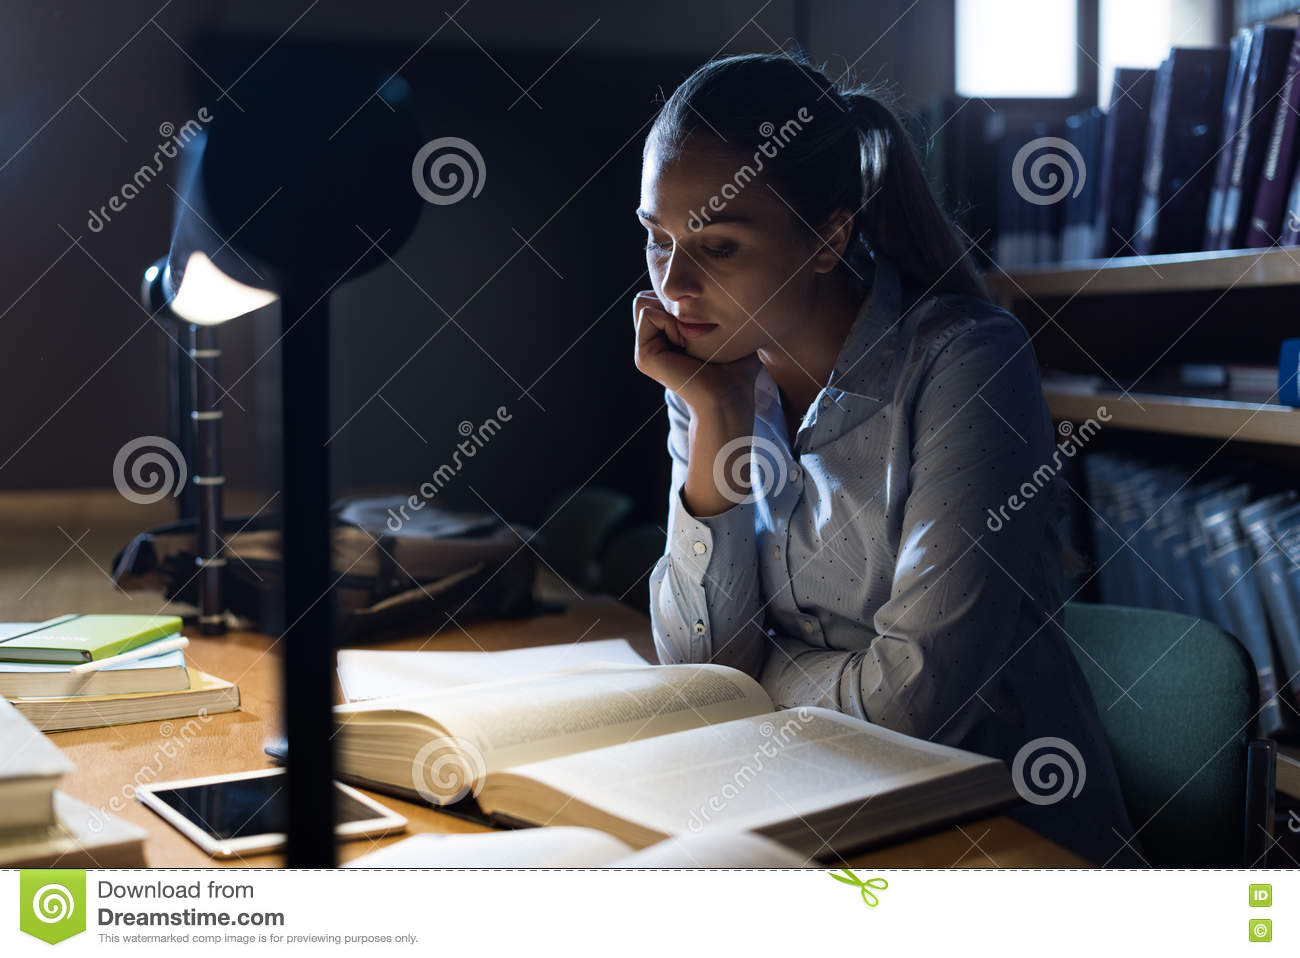 Woman studying late at night